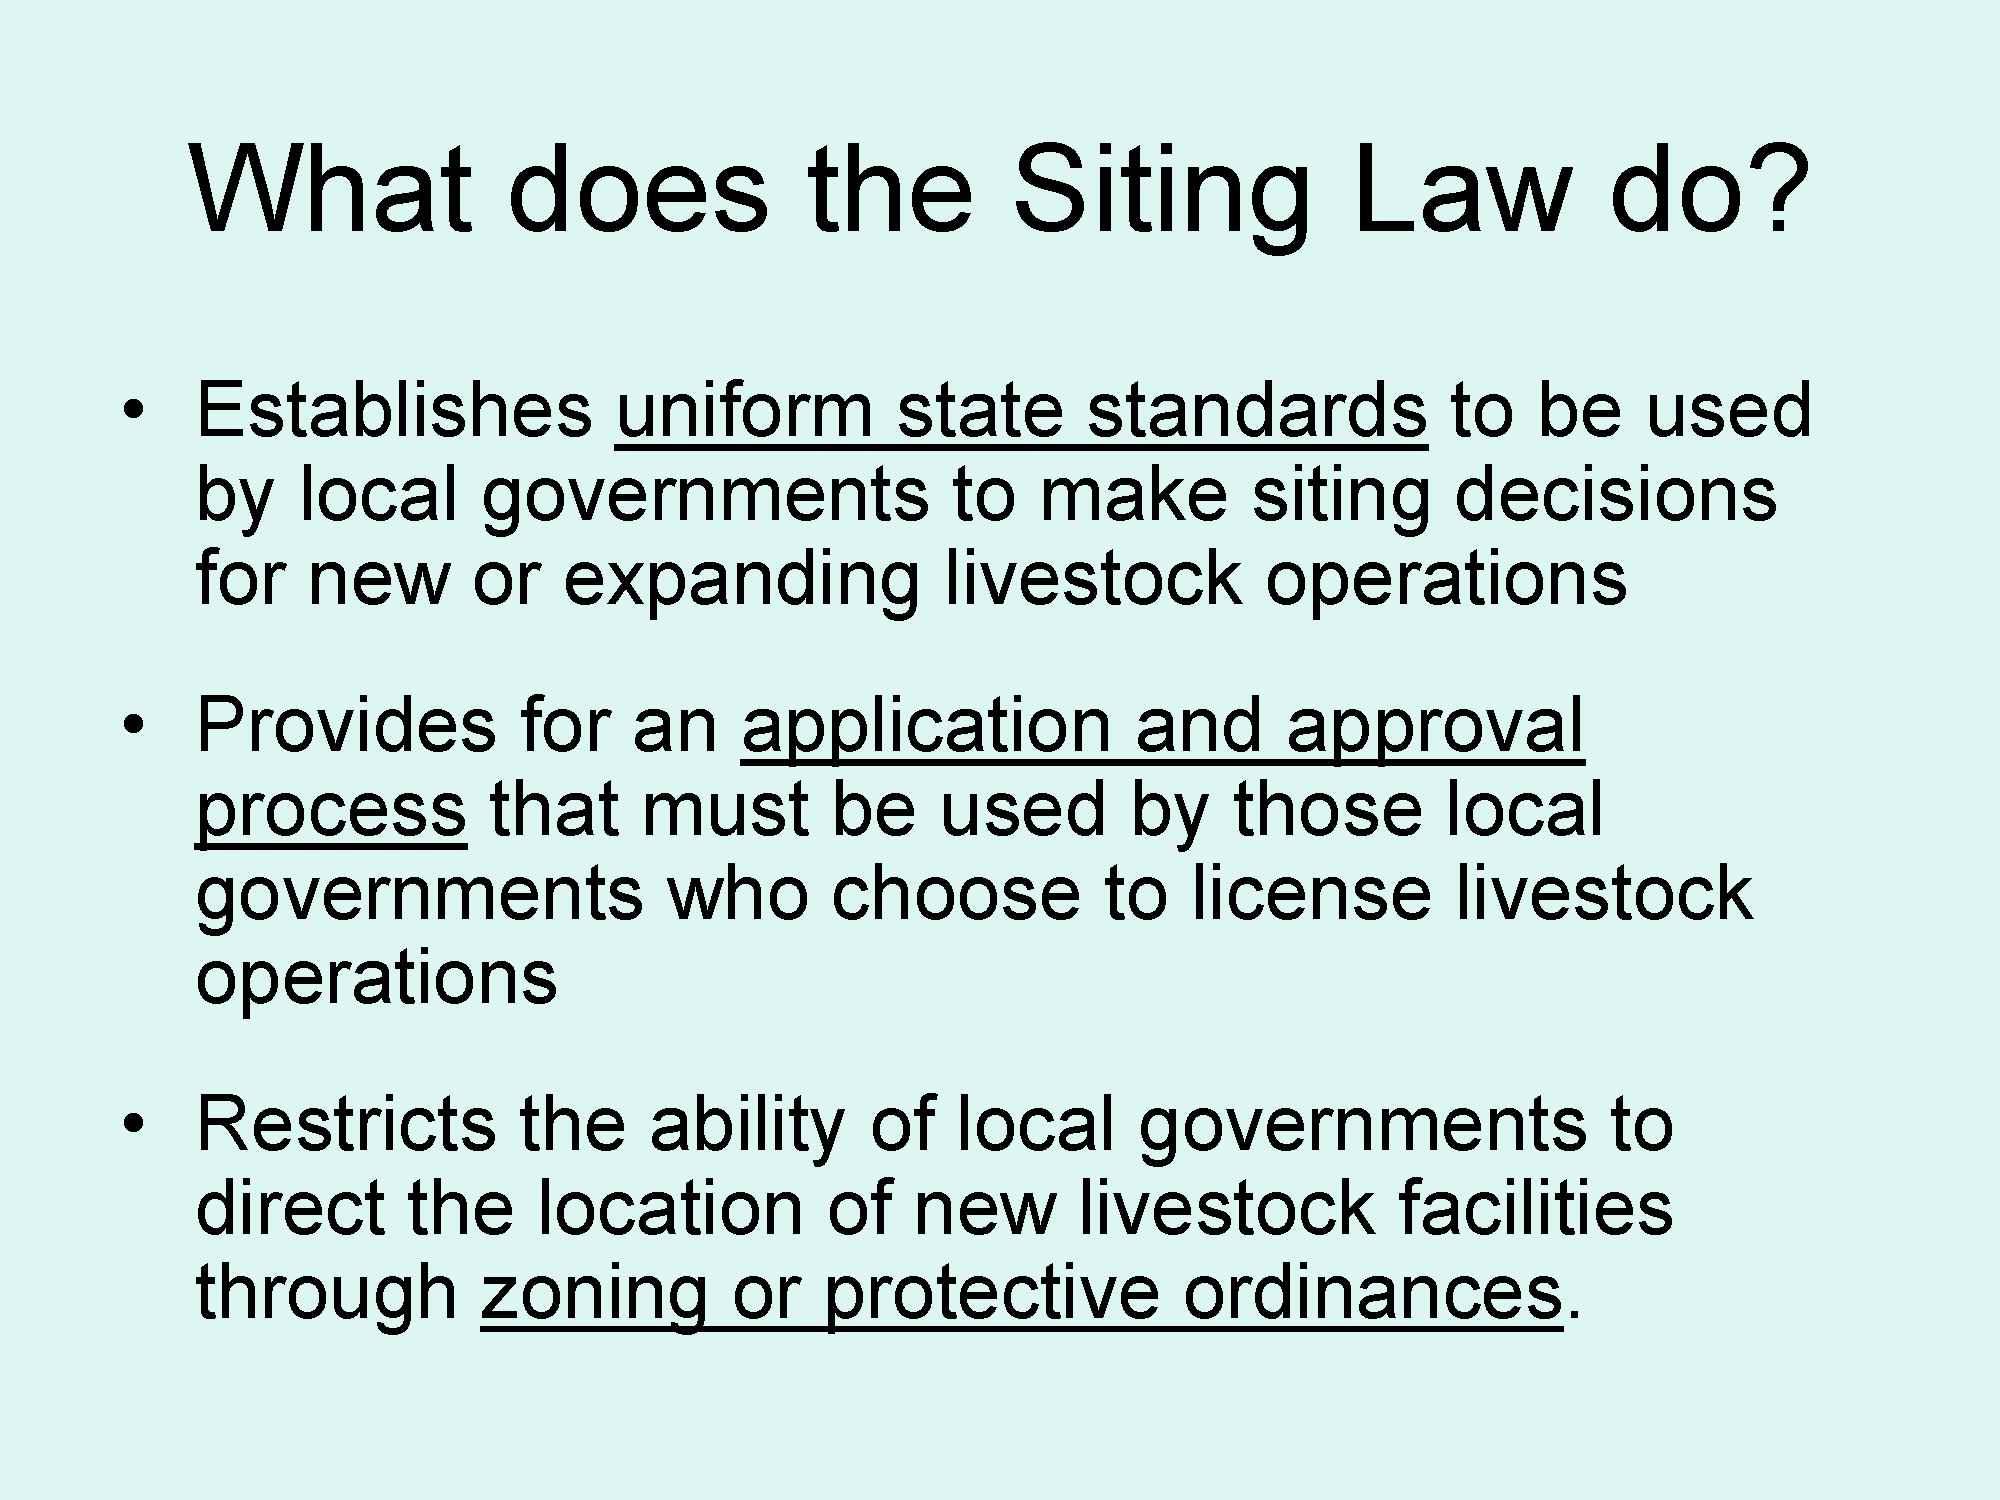 An_Overview_of_the_Livestock_Siting_Law_Page_05.png